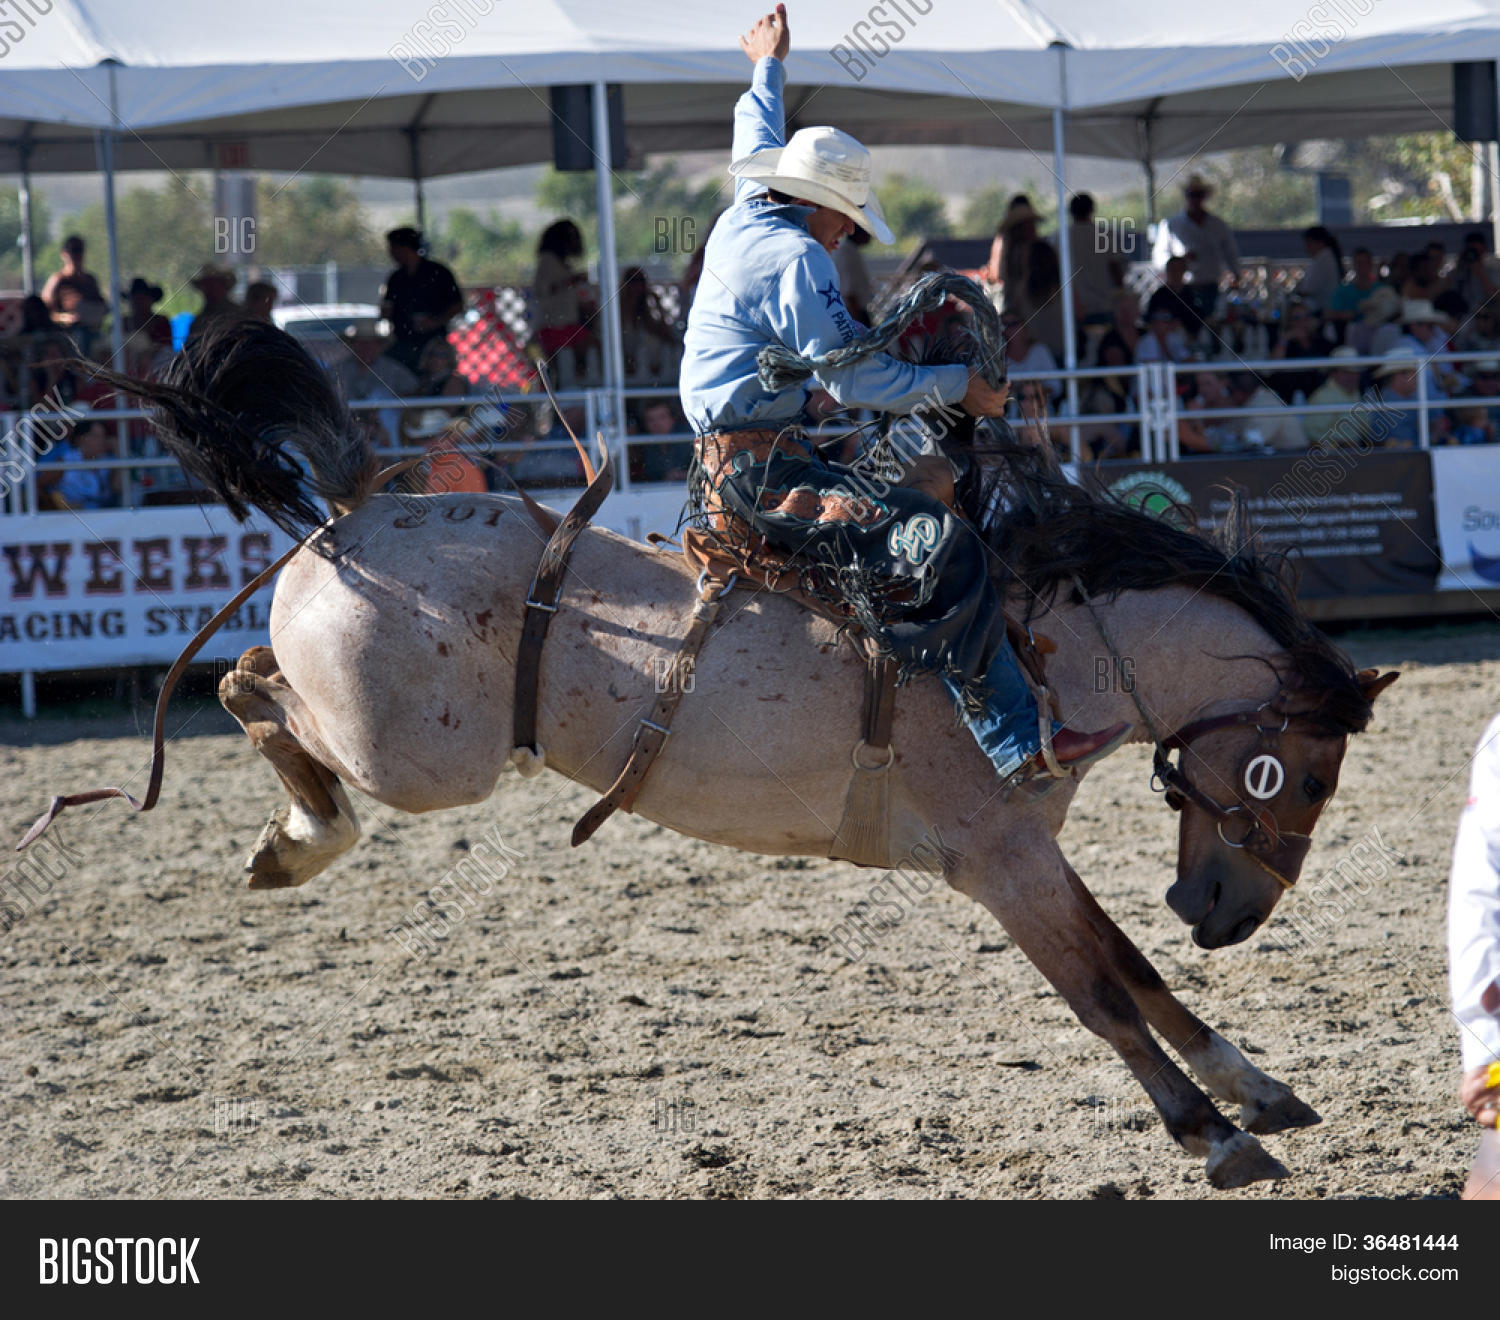 TGRA - A Texas Tradition Rodeo - TGRA - - vr. 1.0.0